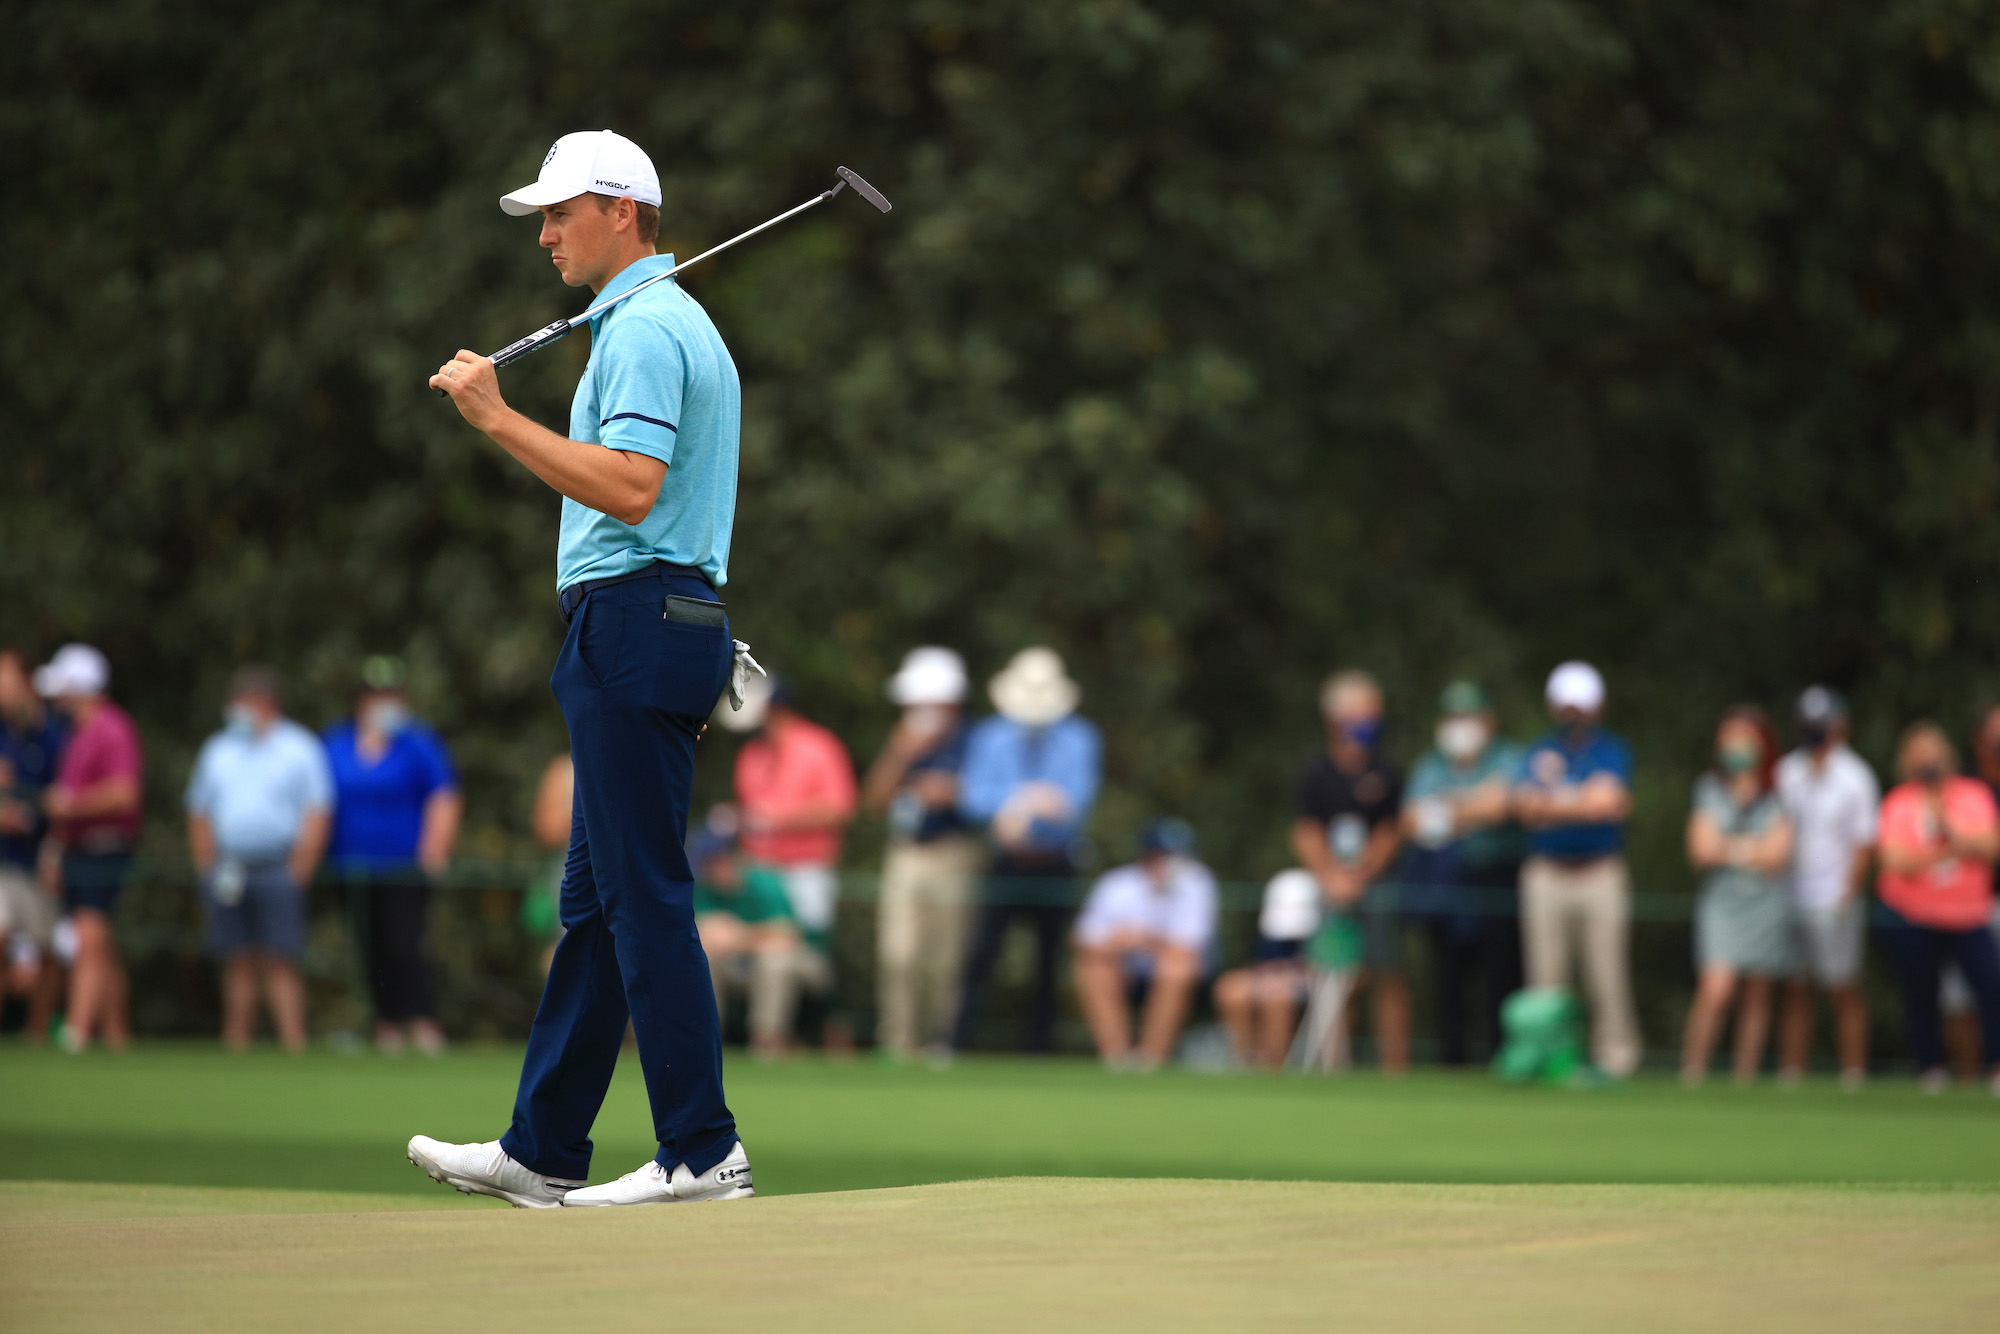 2021 Masters Tournament: Round 2 - On the 13th Gr